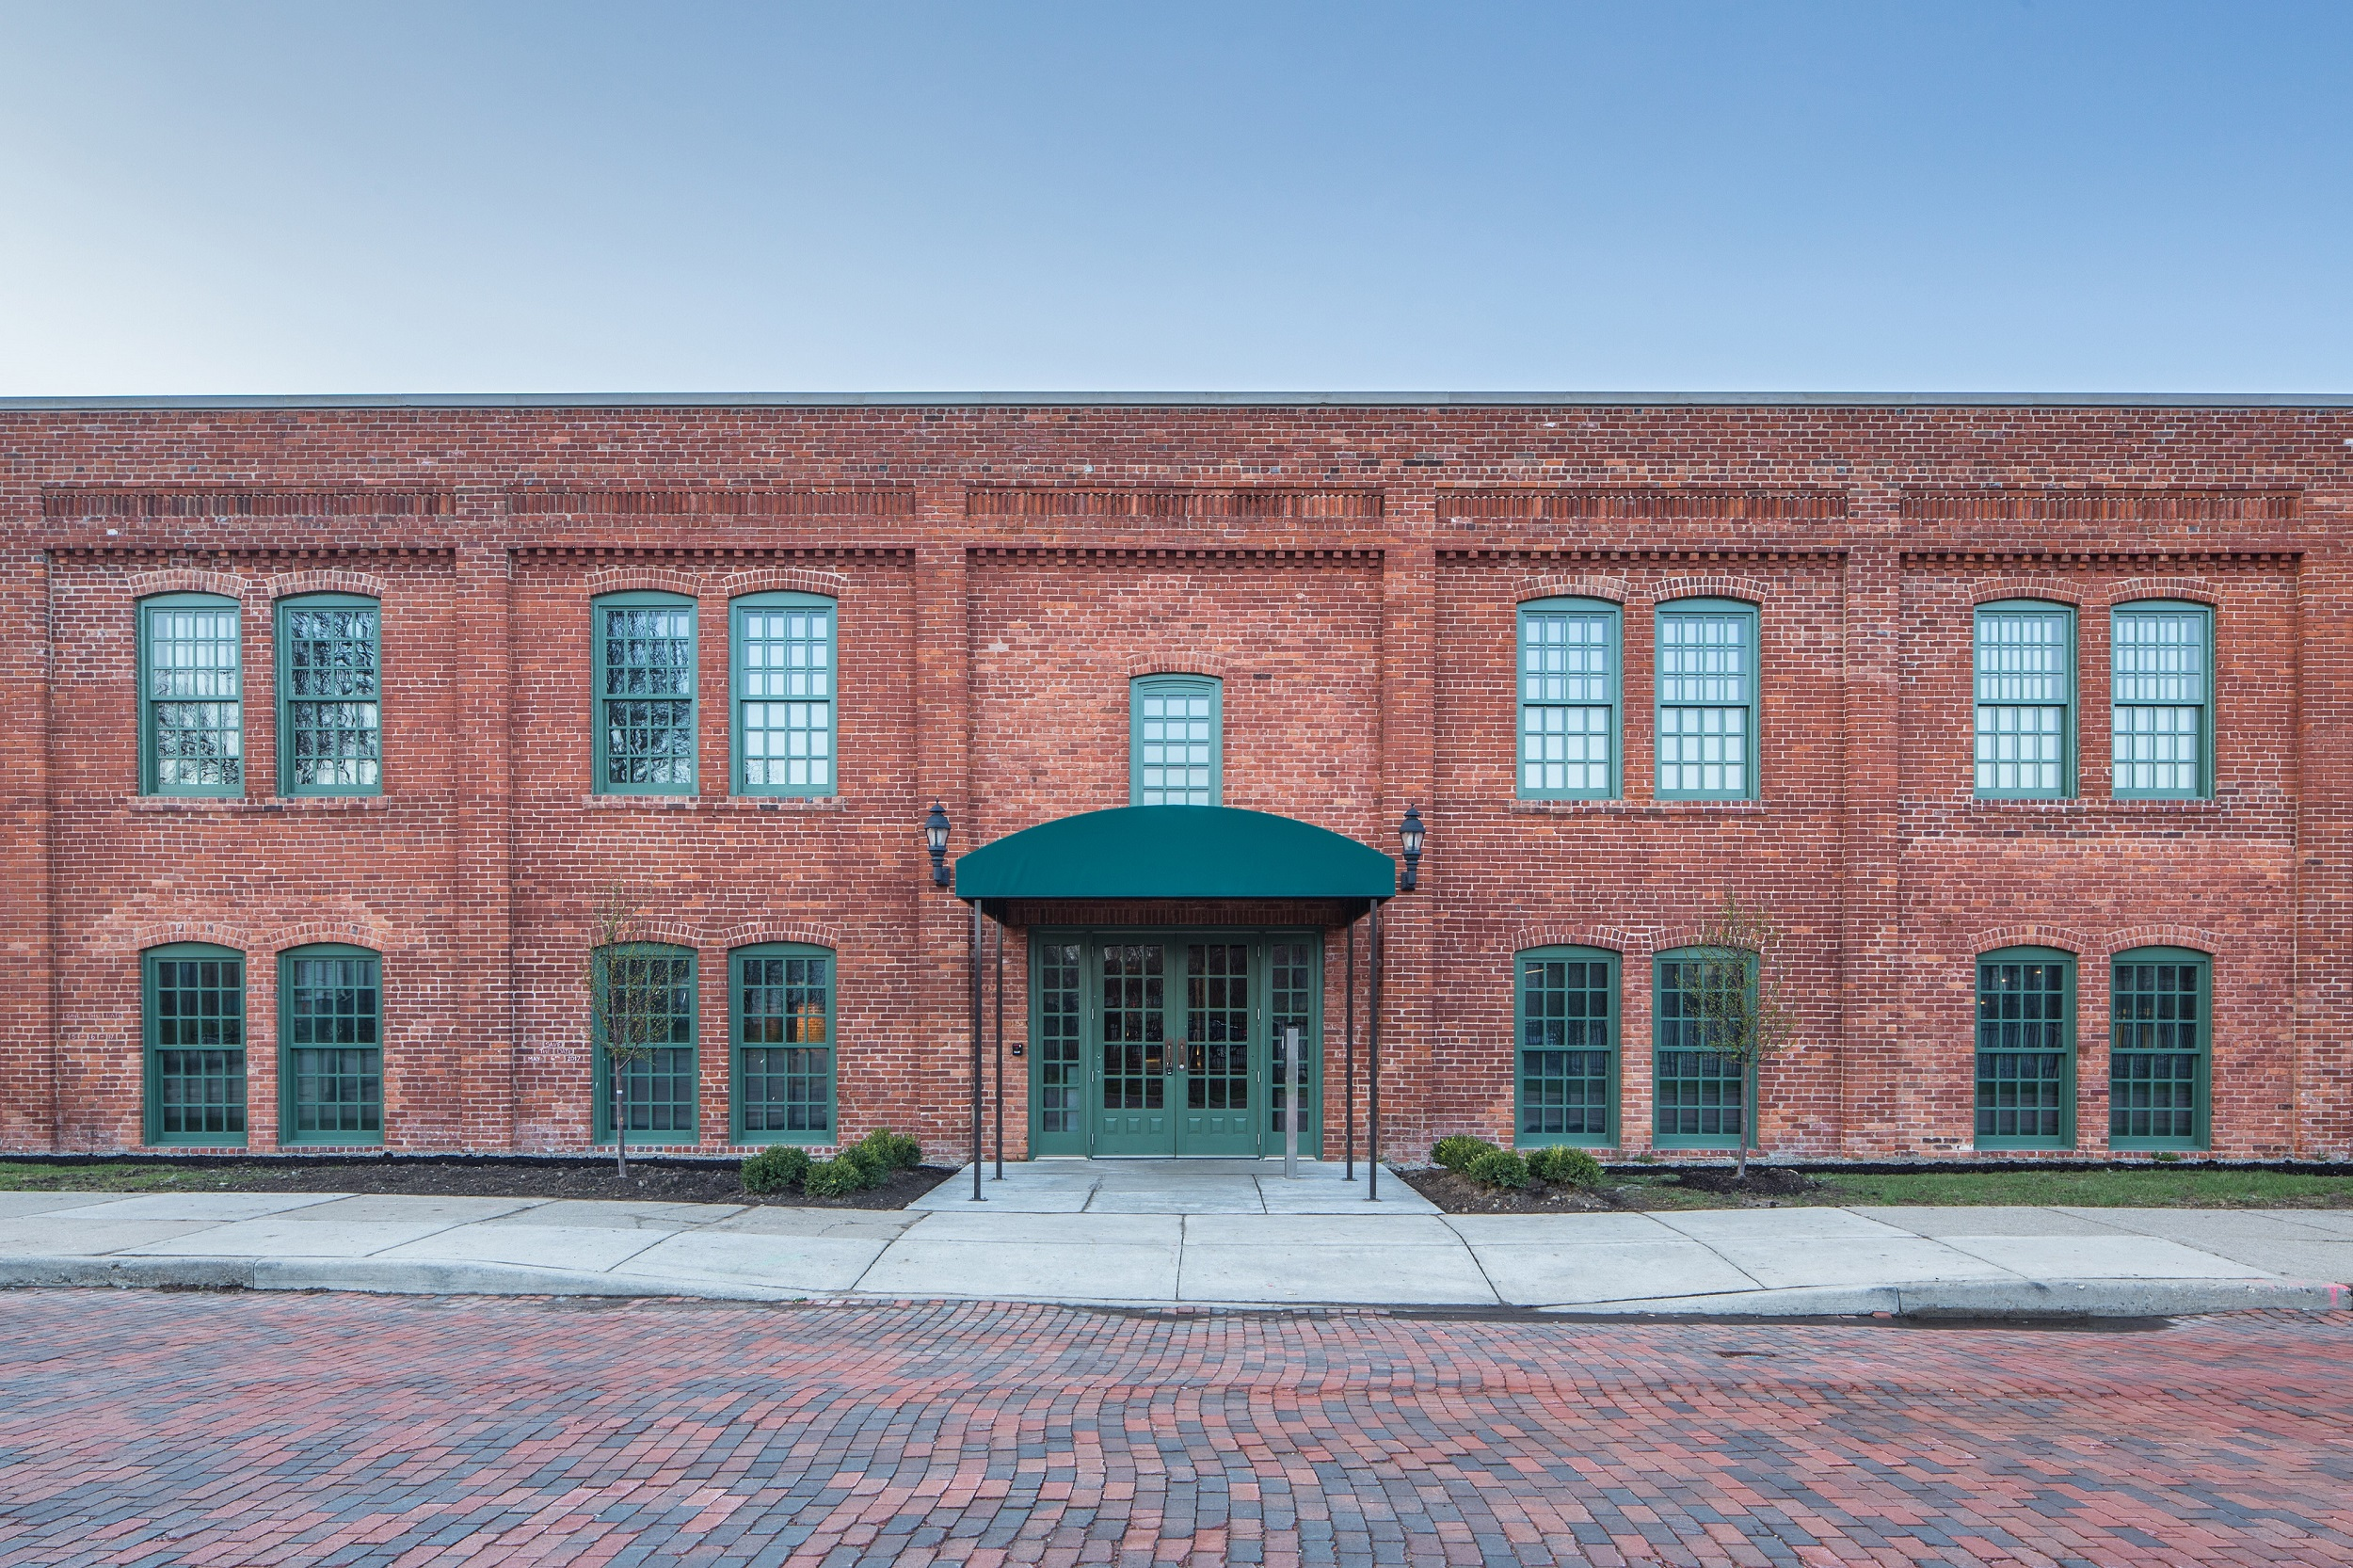 Main entrance of the restored Durant-Dort Factory One, in Flint, Michigan, which includes more than 17,000 color-matched replacement bricks | Photo by Jason Robinson